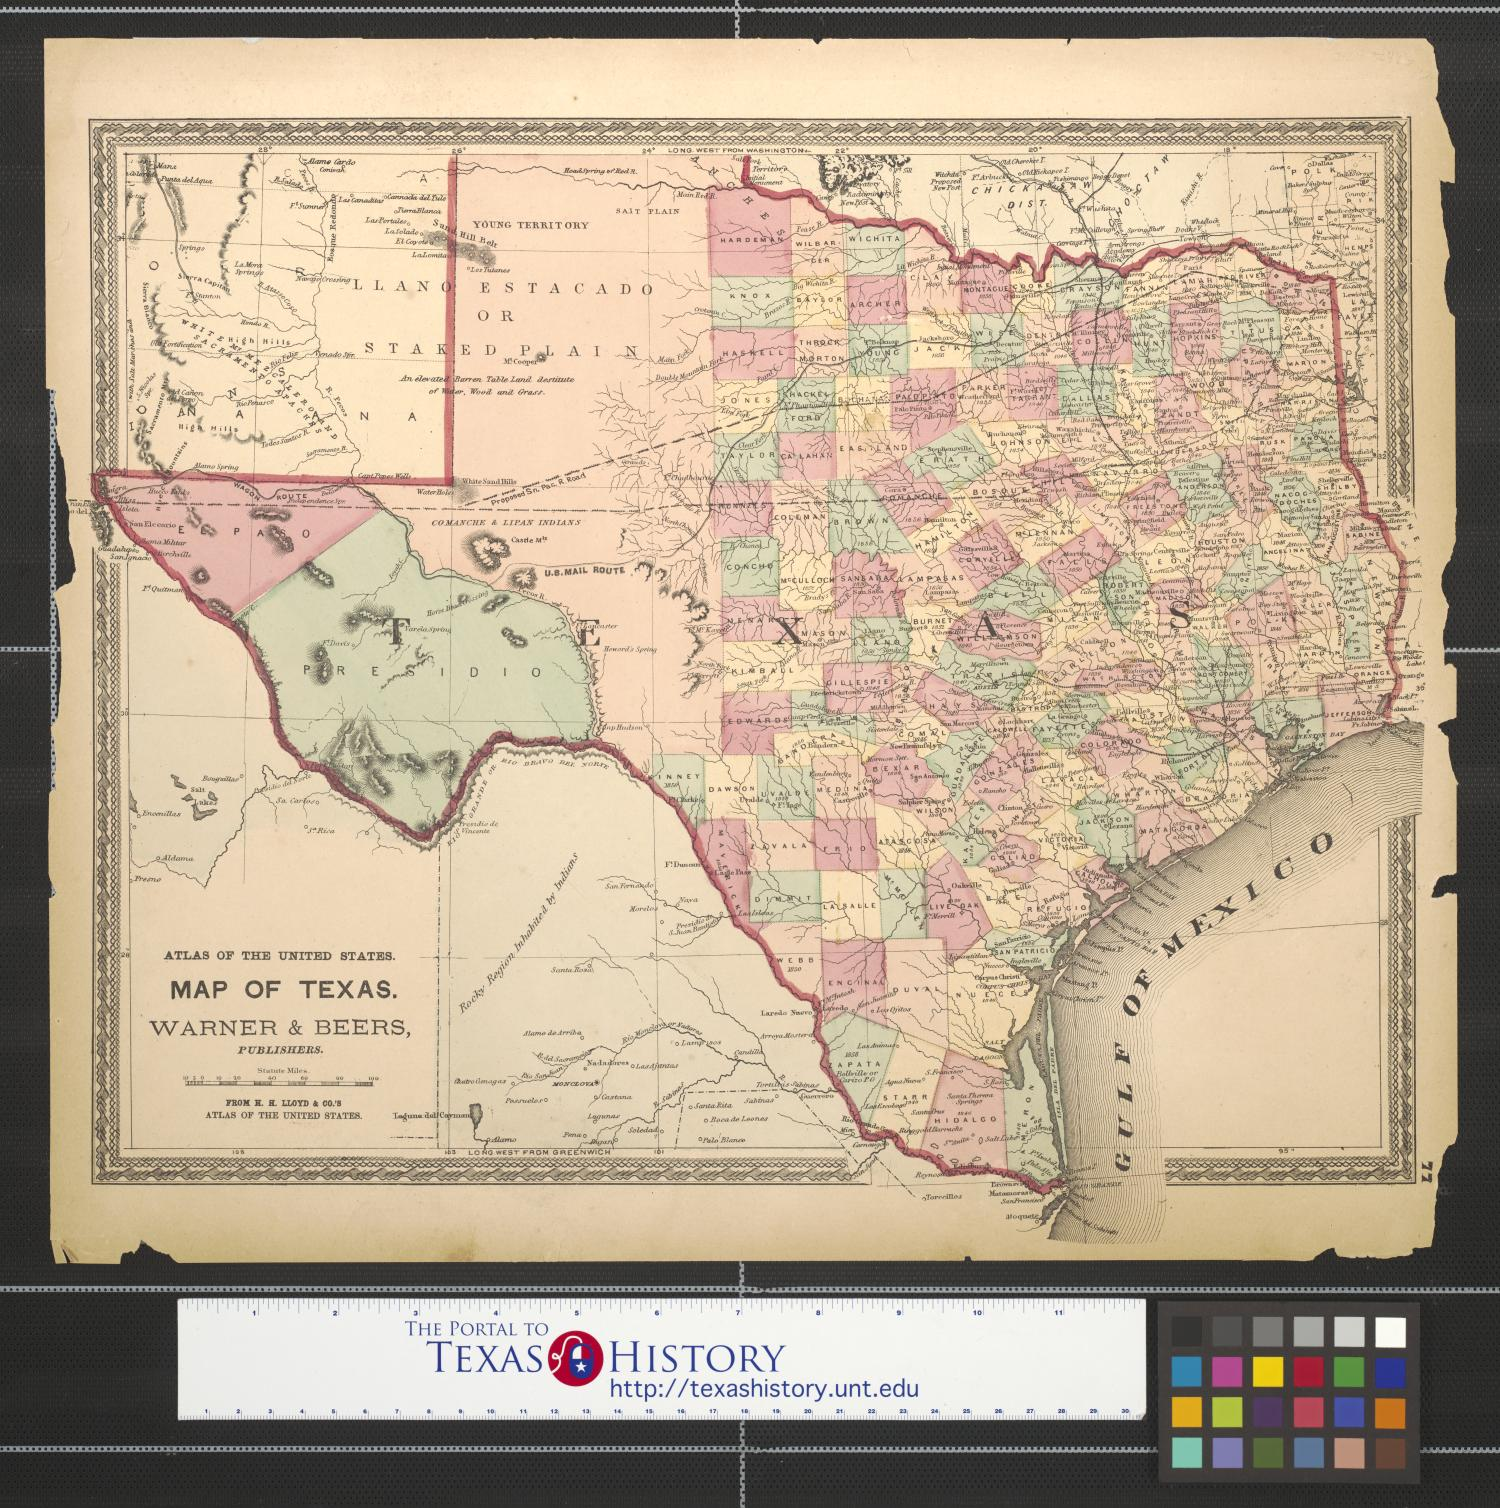 Map of Texas.                                                                                                      [Sequence #]: 1 of 2